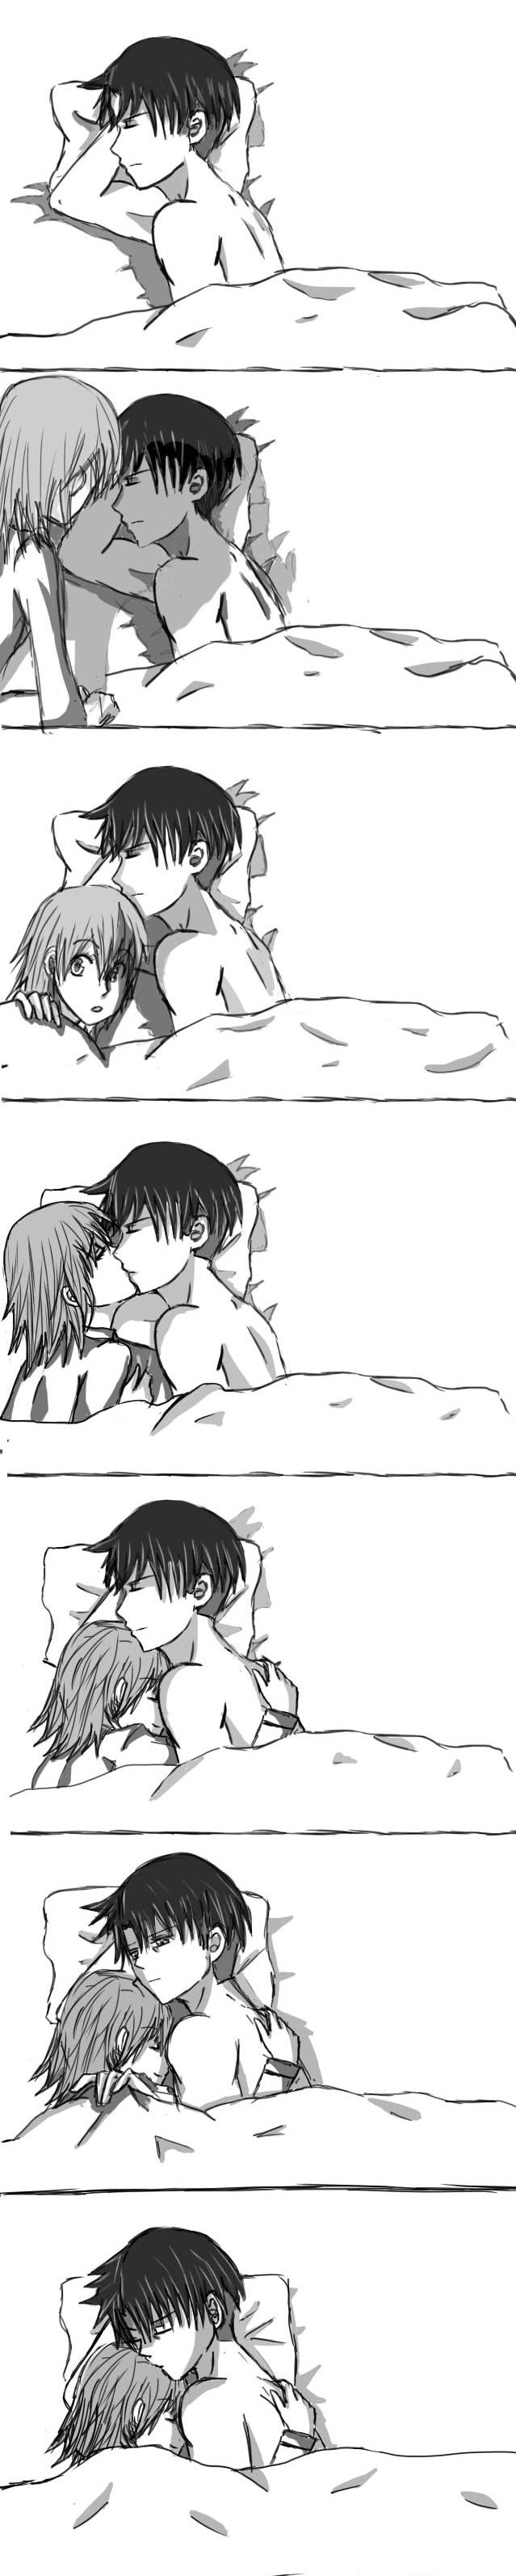 Levi and Petra: Bedtime by AshesNewMoon.deviantart.com on @deviantART